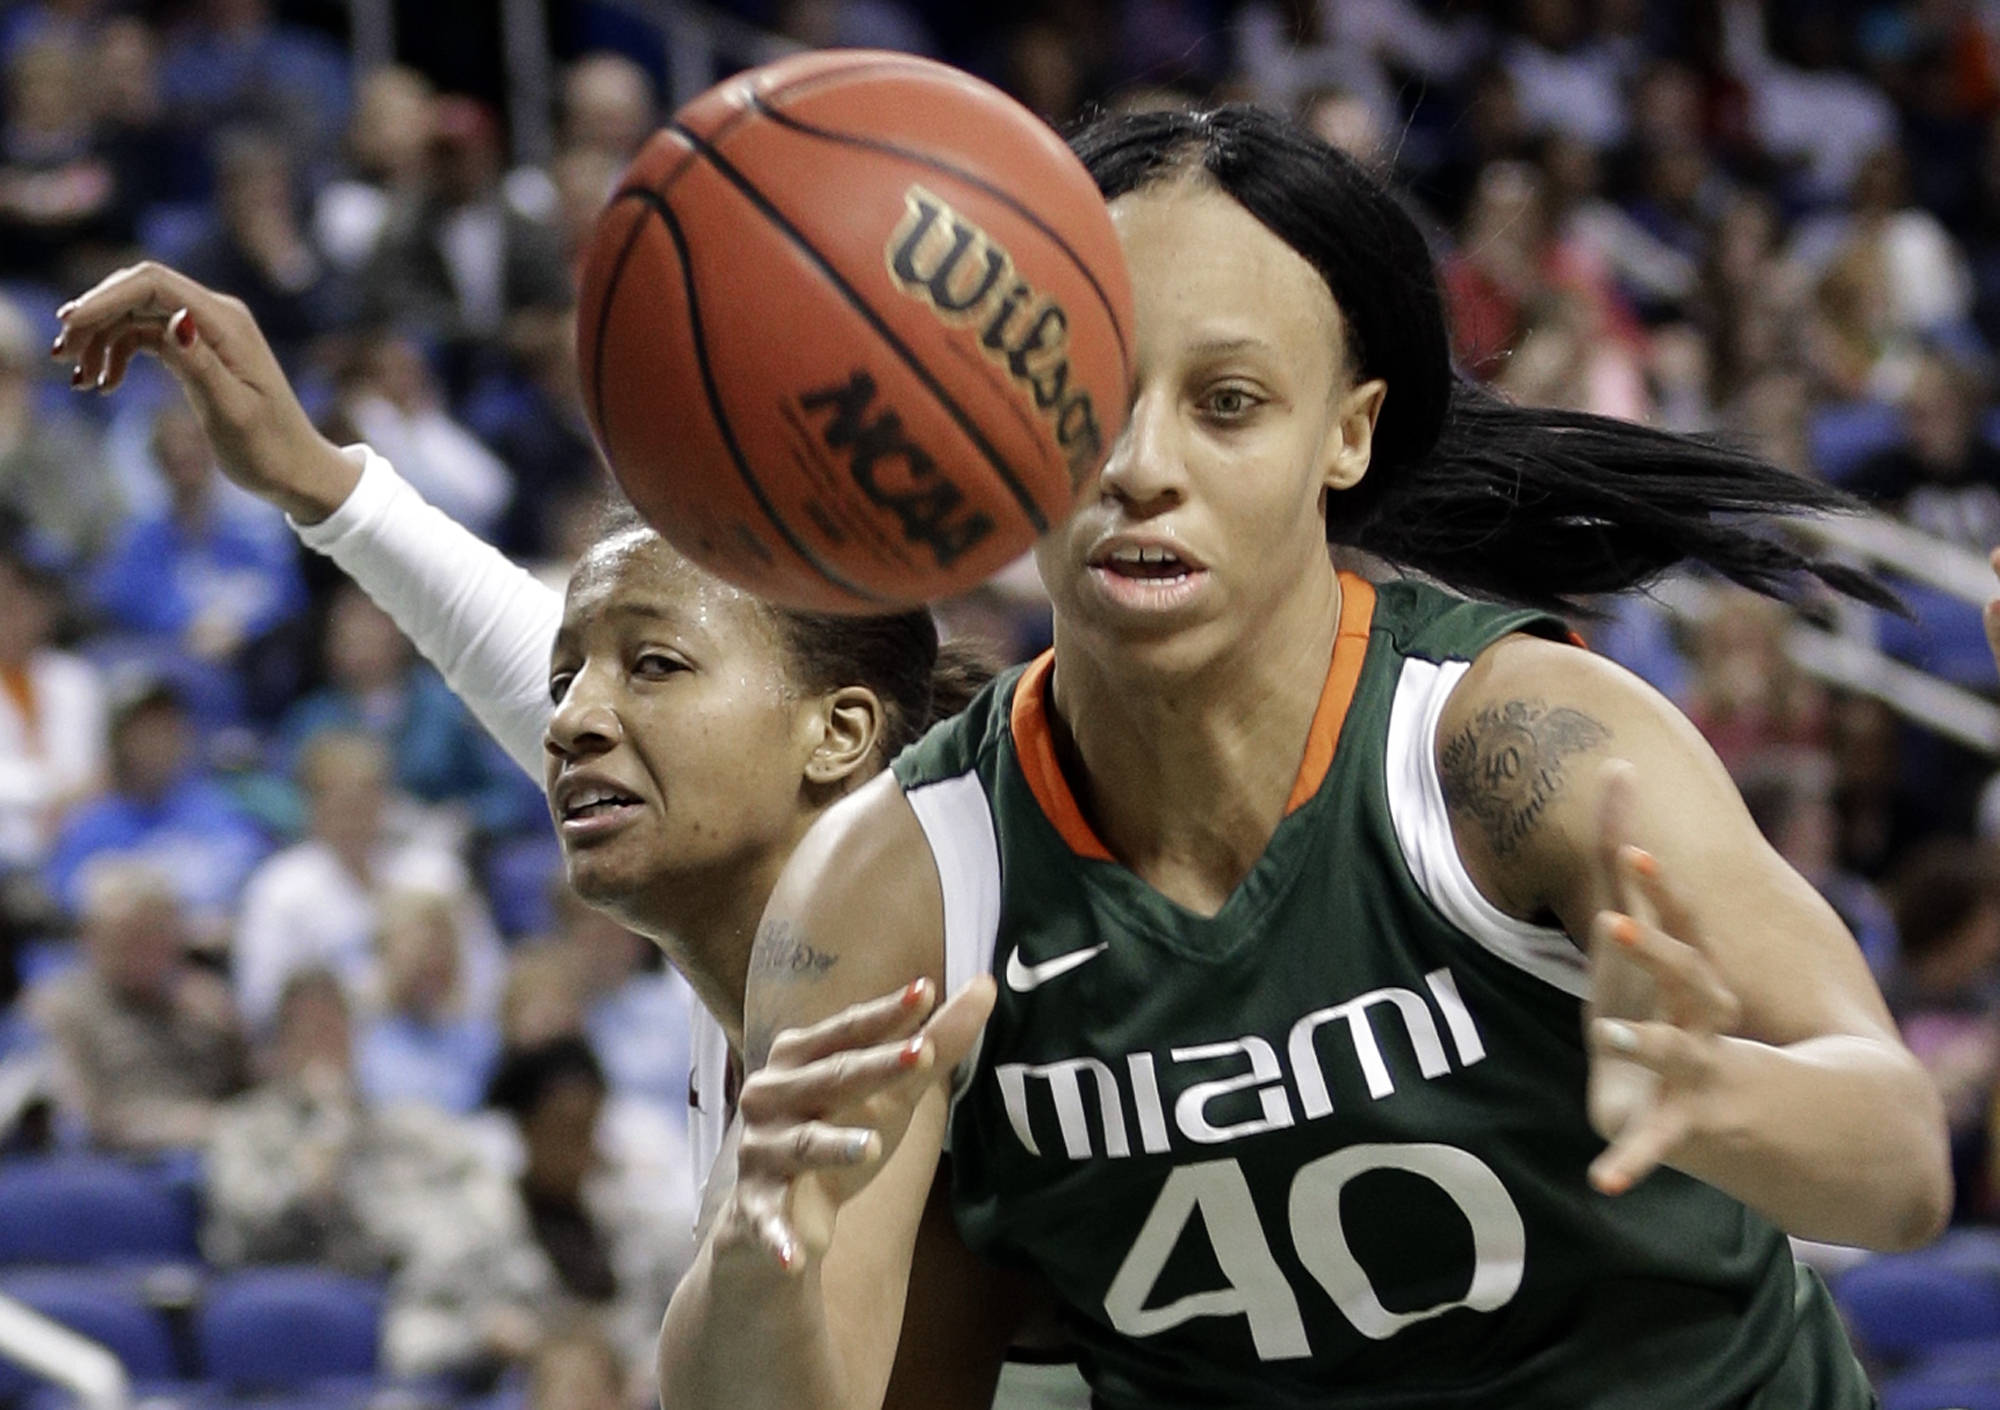 Miami's Shawnice Wilson, right, battles with Florida State's Chelsea Davis, left, for a rebound. (AP Photo/Chuck Burton)